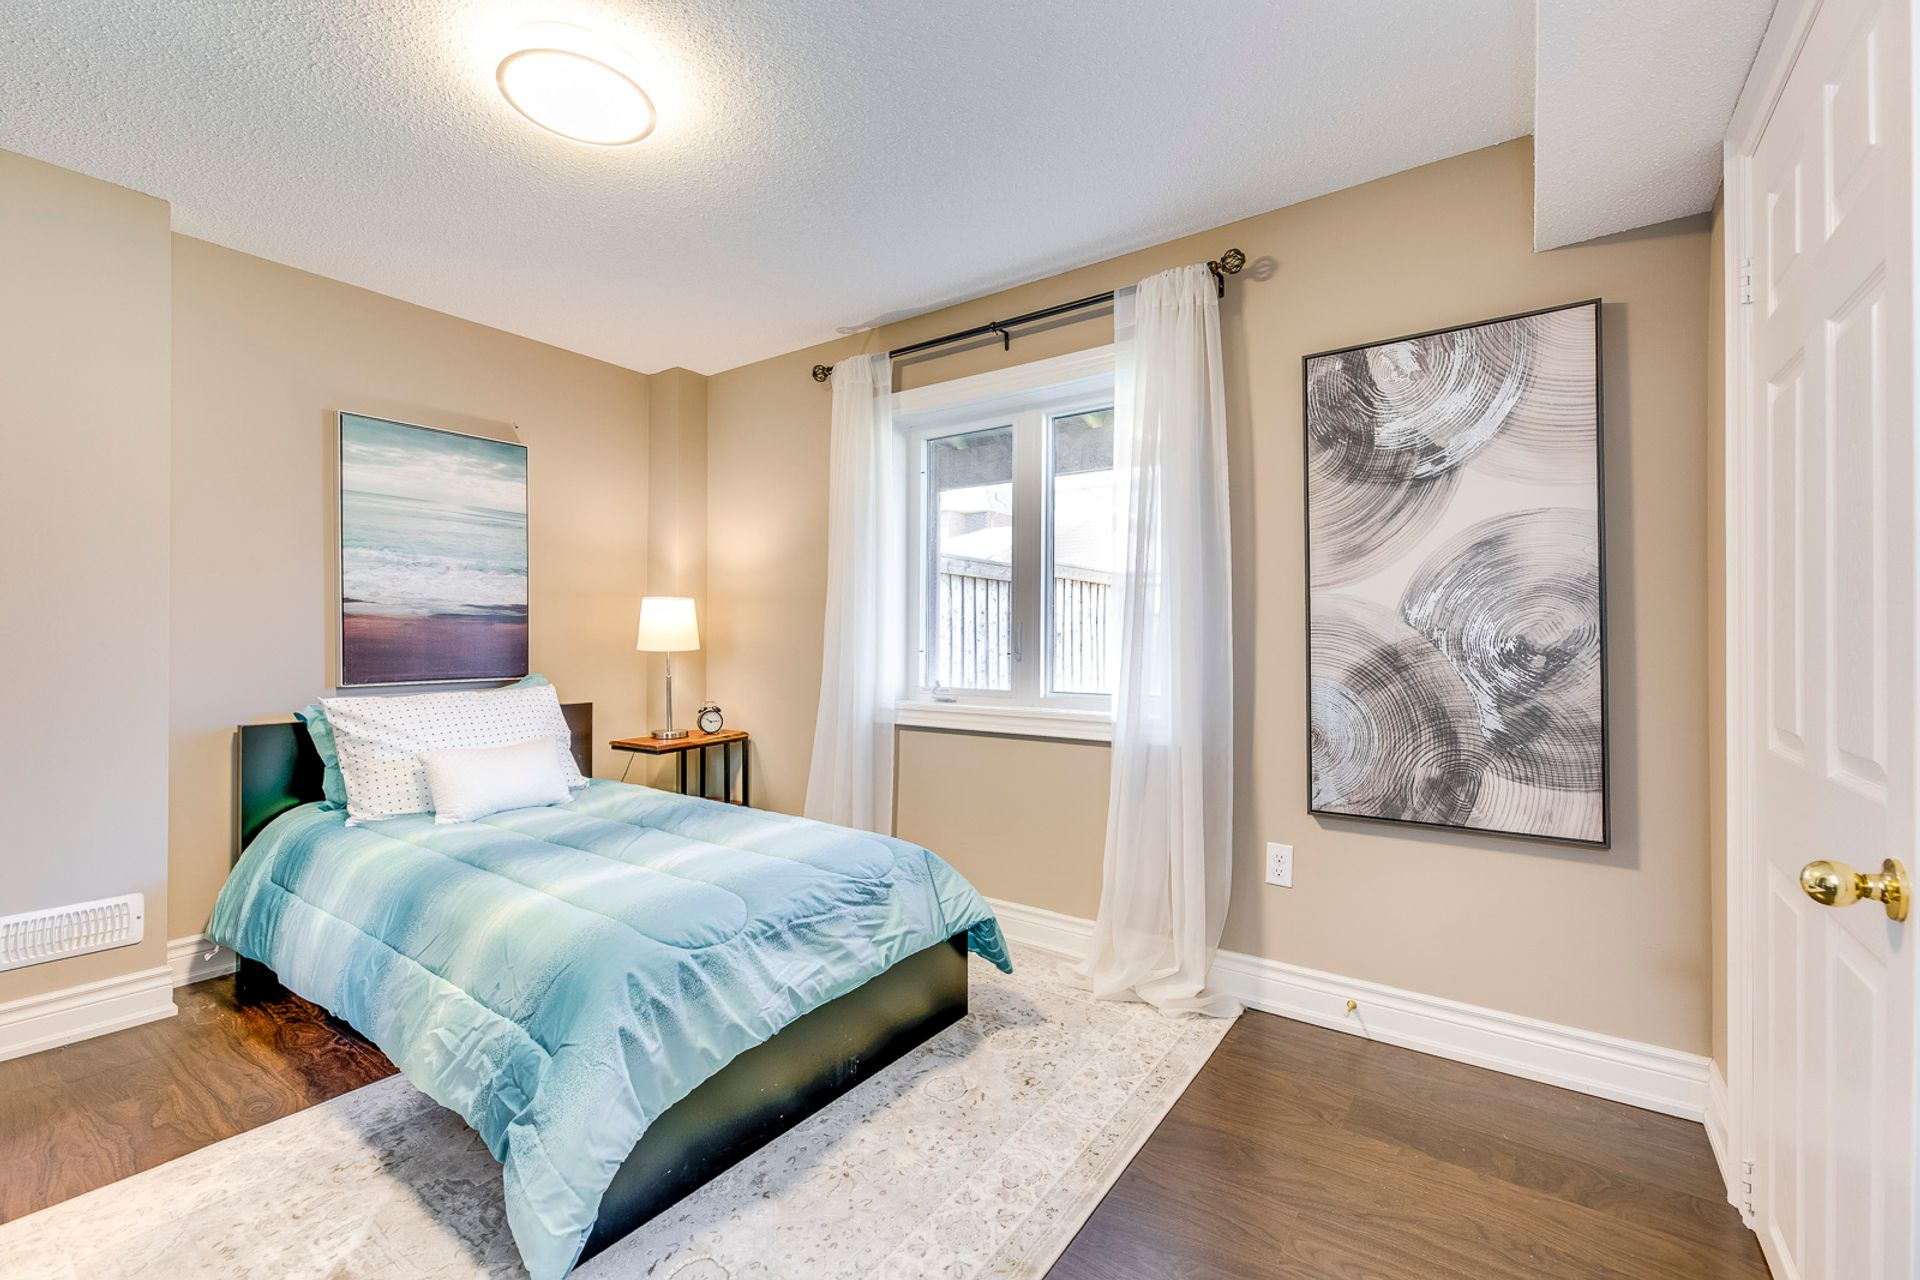 mls-61 at 5480 Meadowcrest Avenue, Churchill Meadows, Mississauga